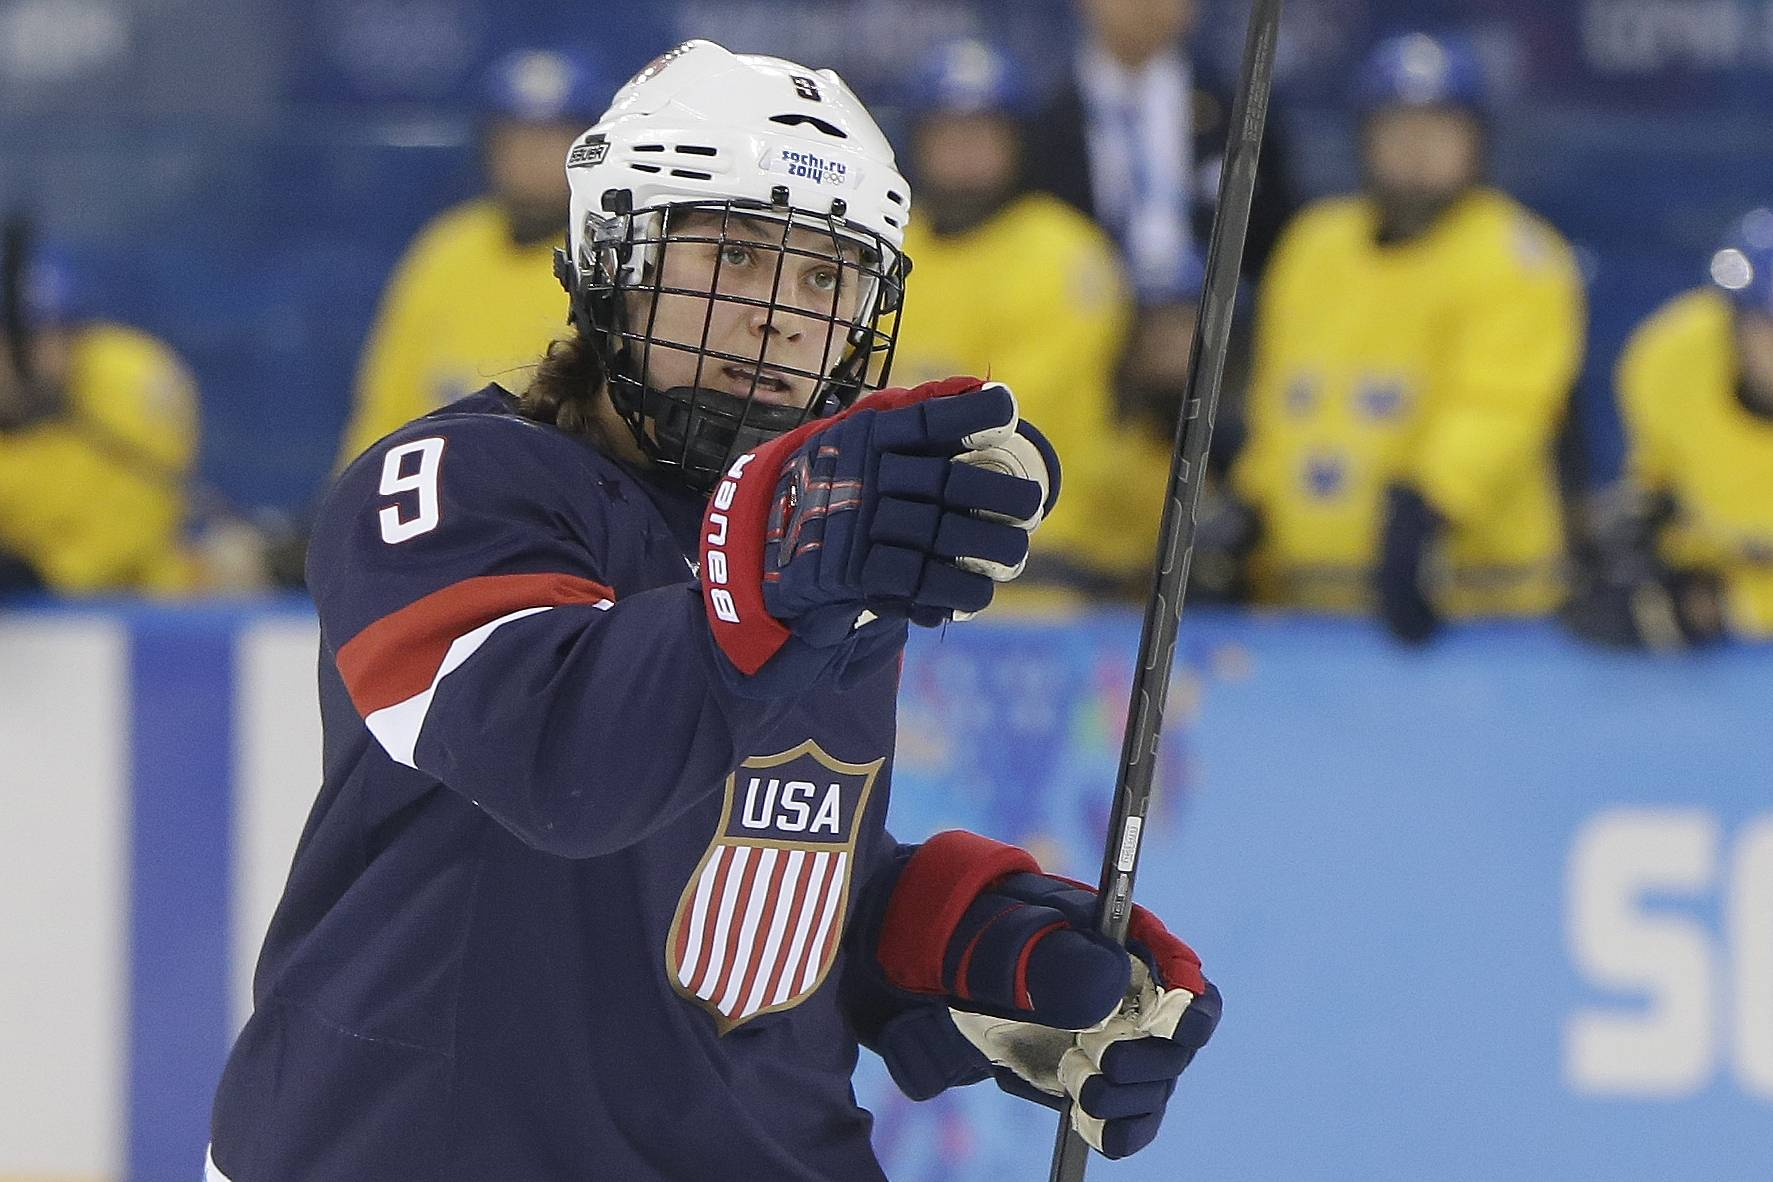 U.S. women's hockey team defenseman Megan Bozek, a Buffalo Grove native and Stevenson High School graduate, celebrates her goal against Sweden during second period of semifinal game Feb. 17 in the Sochi Winter Olympics.